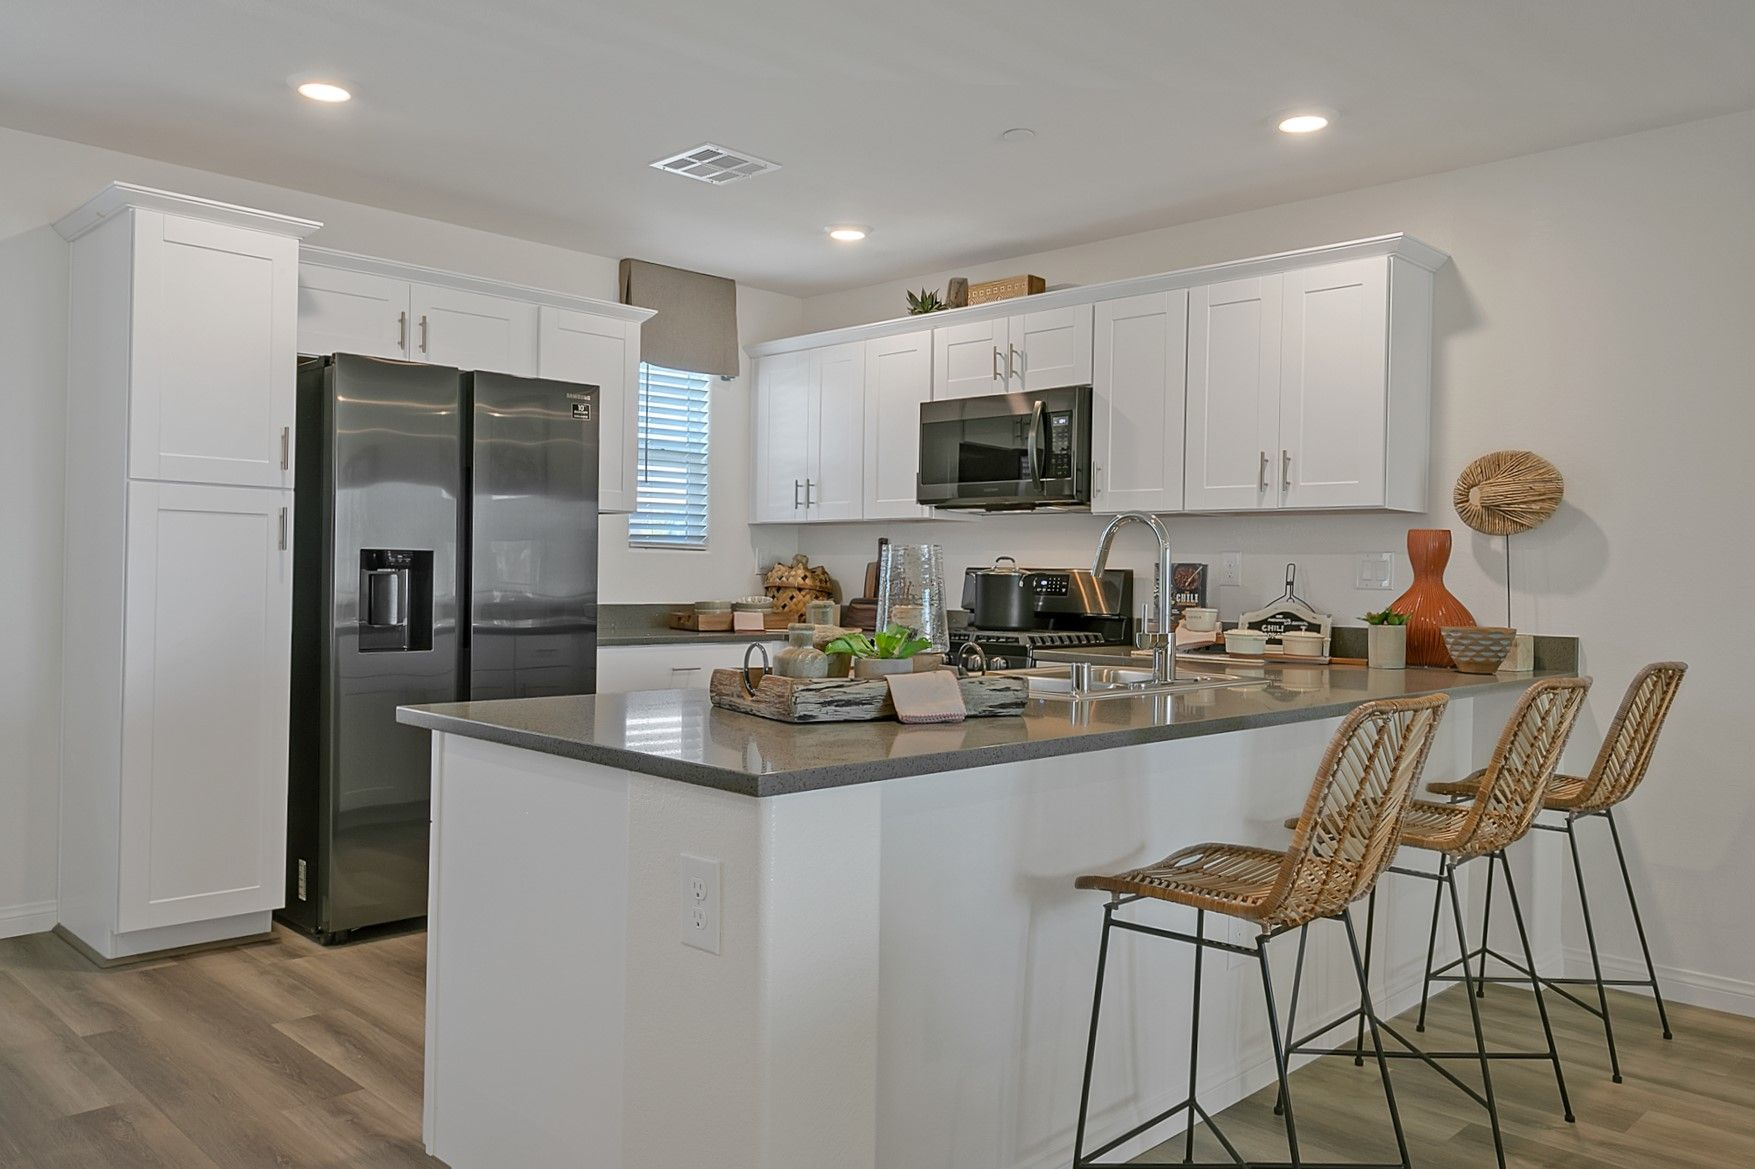 Kitchen featured in the Plan 403 By Touchstone Living in Las Vegas, NV